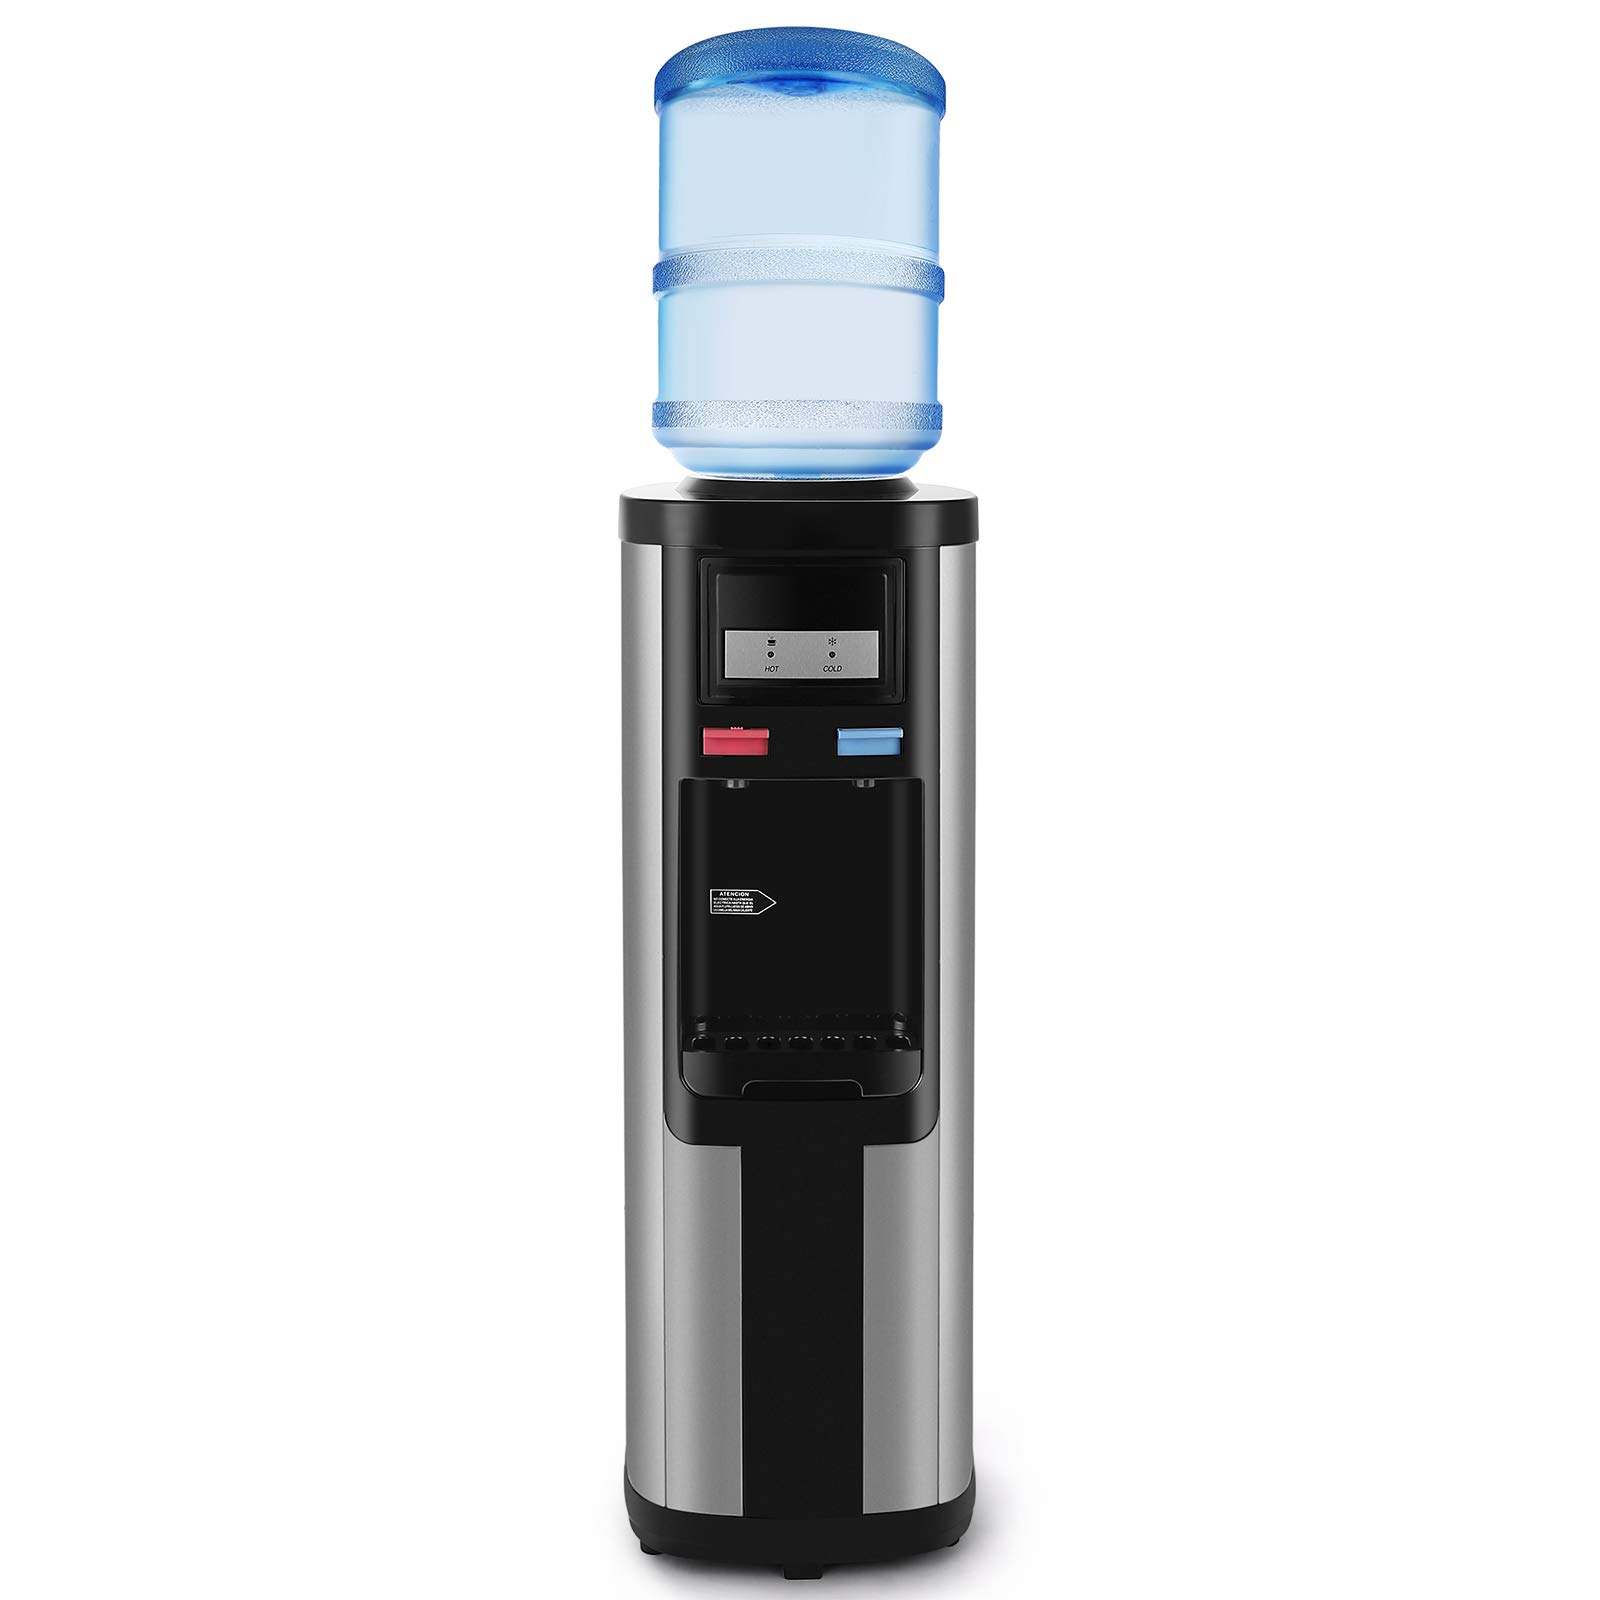 4-EVER Water Cooler Dispenser Top Loading 5 Gallon Stainless Steel Freestanding Compressor Cooling,Hot and Normal Temperature Water, Black